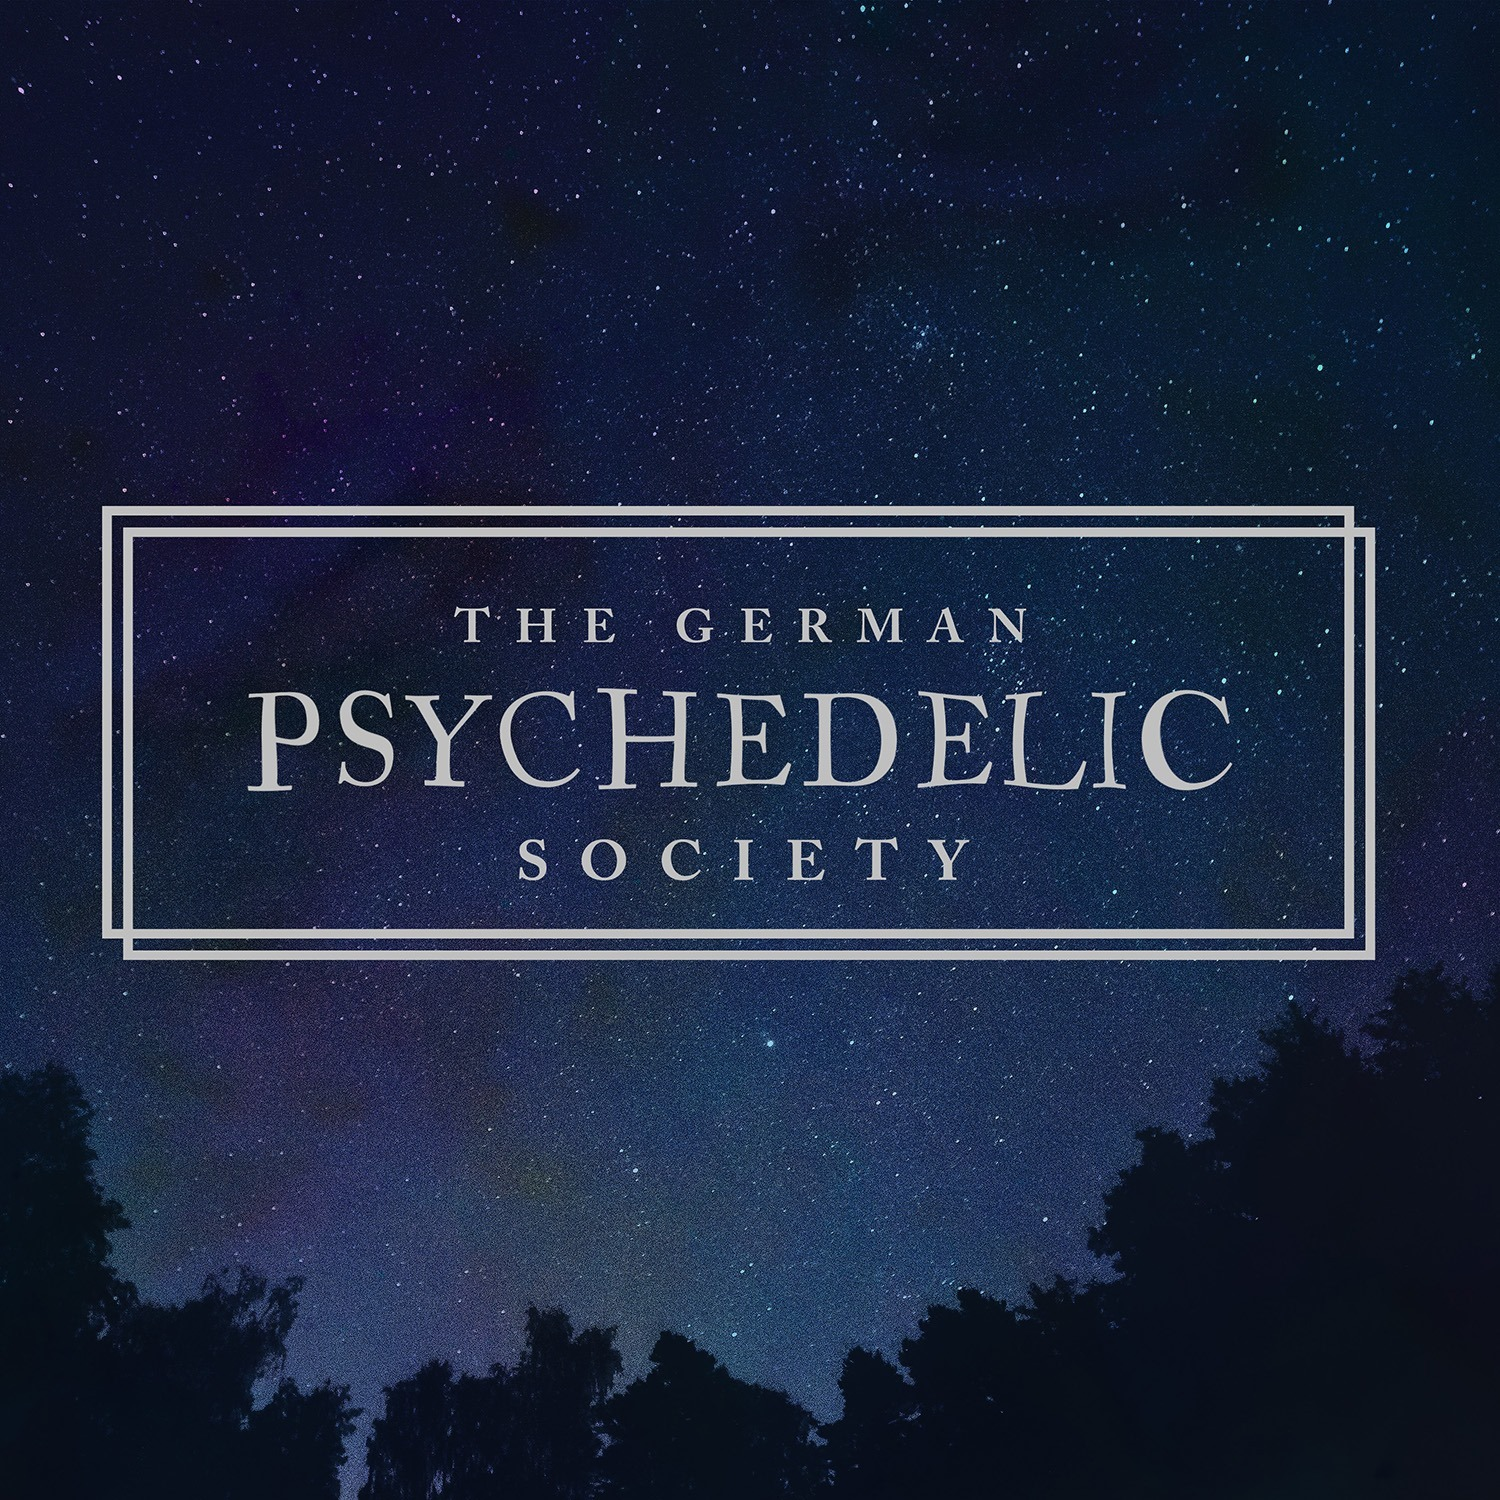 The German Psychedelic Society